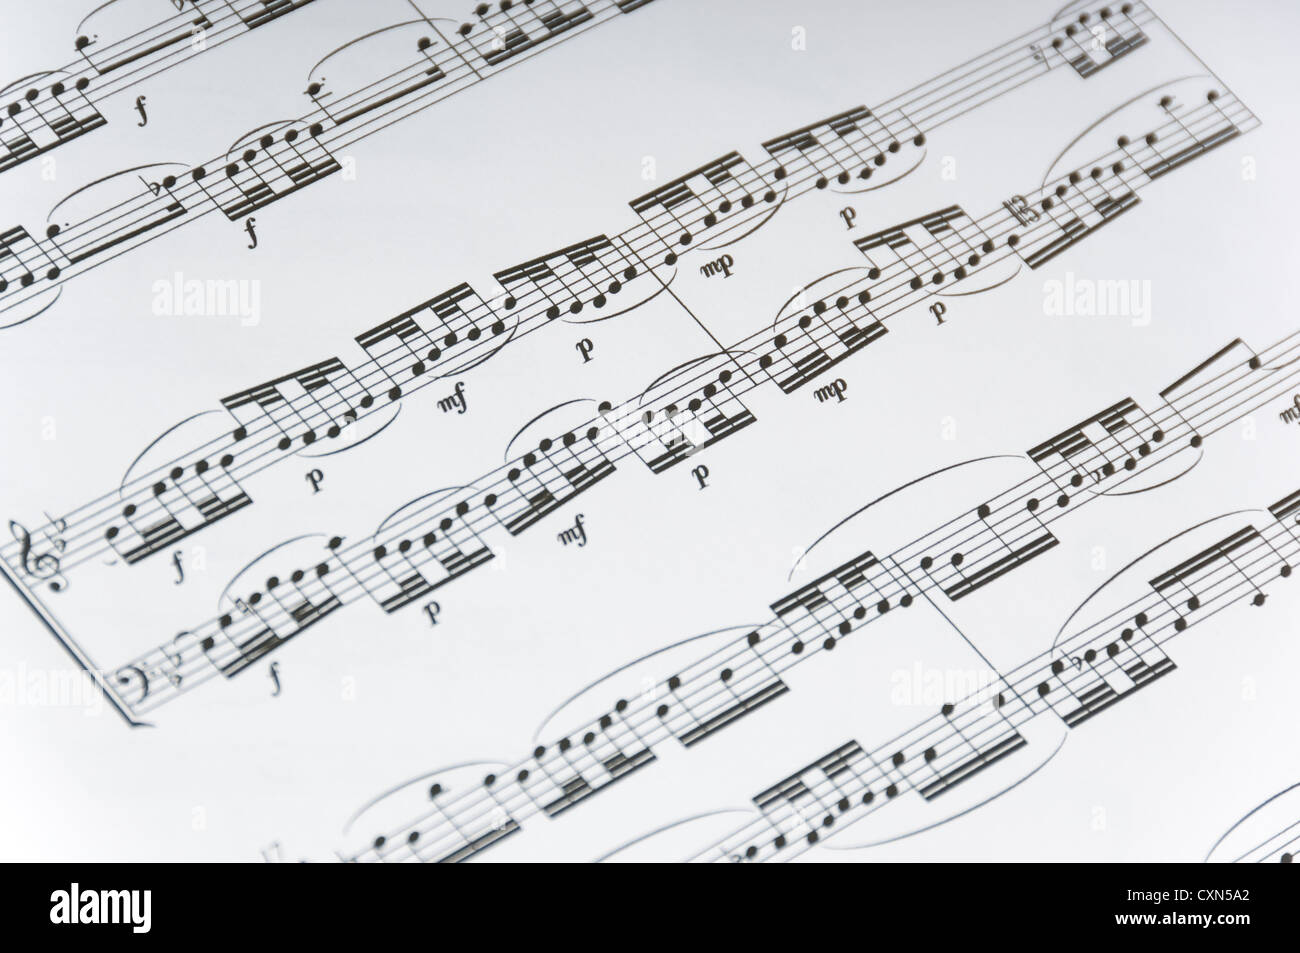 Sheet music background, violin or piano music, with notes ...